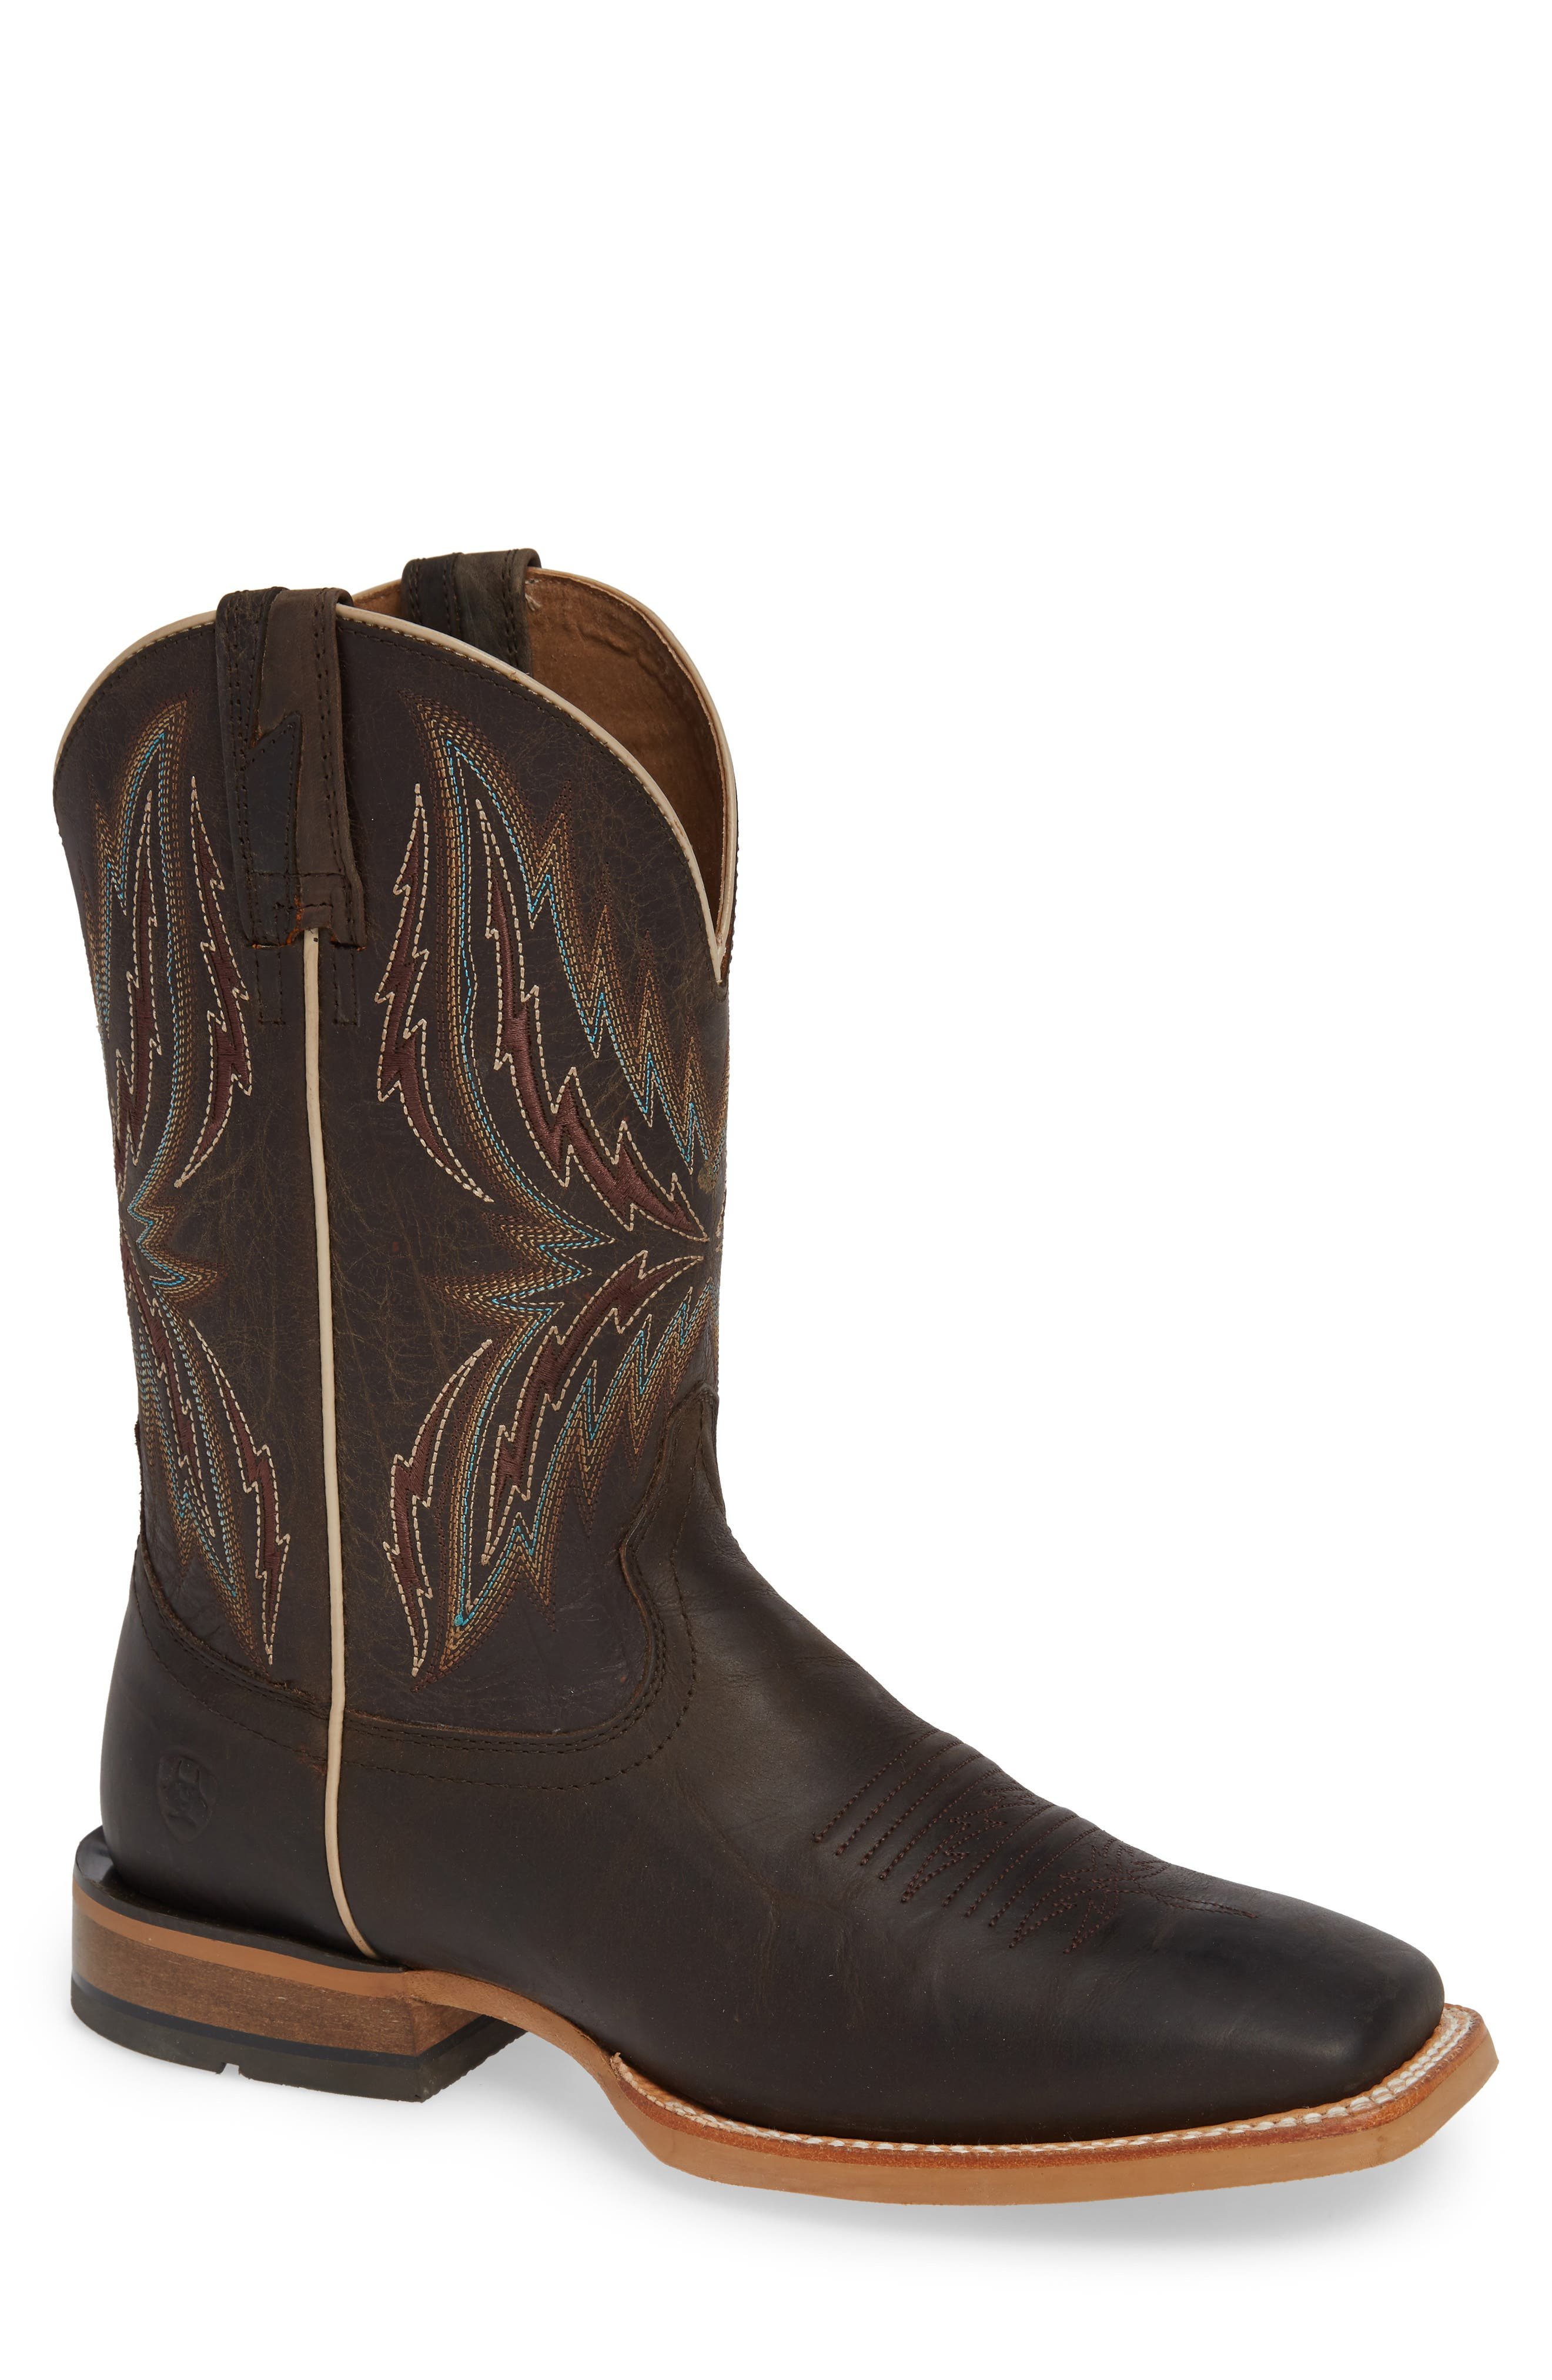 Arena Rebound Cowboy Boot,                             Main thumbnail 1, color,                             BROWN/ DESERT LEATHER